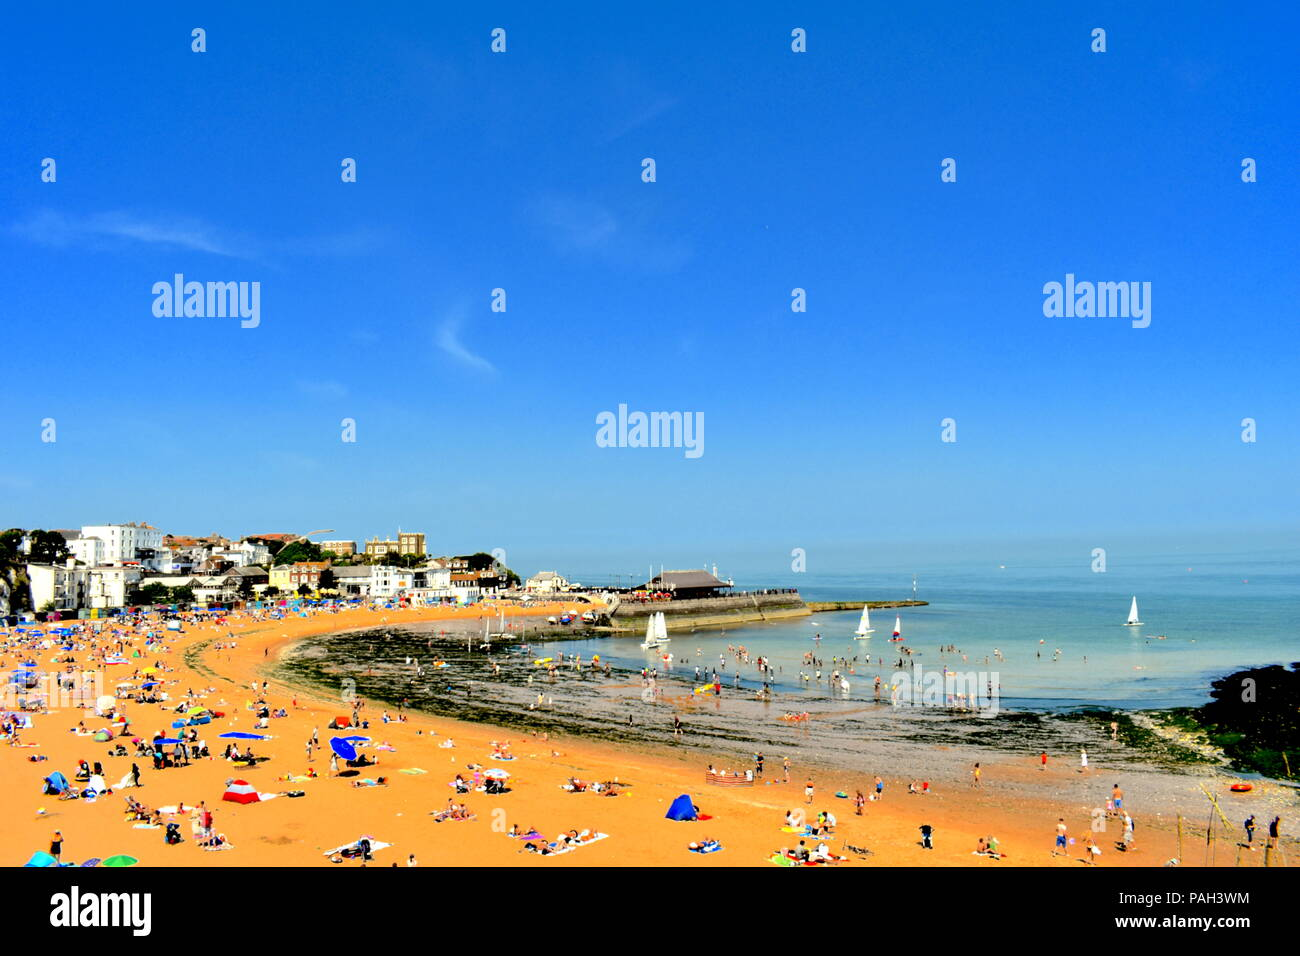 People on the beach in Broadstairs, Kent as the hot weather continues across the UK, July, 2018 - Stock Image